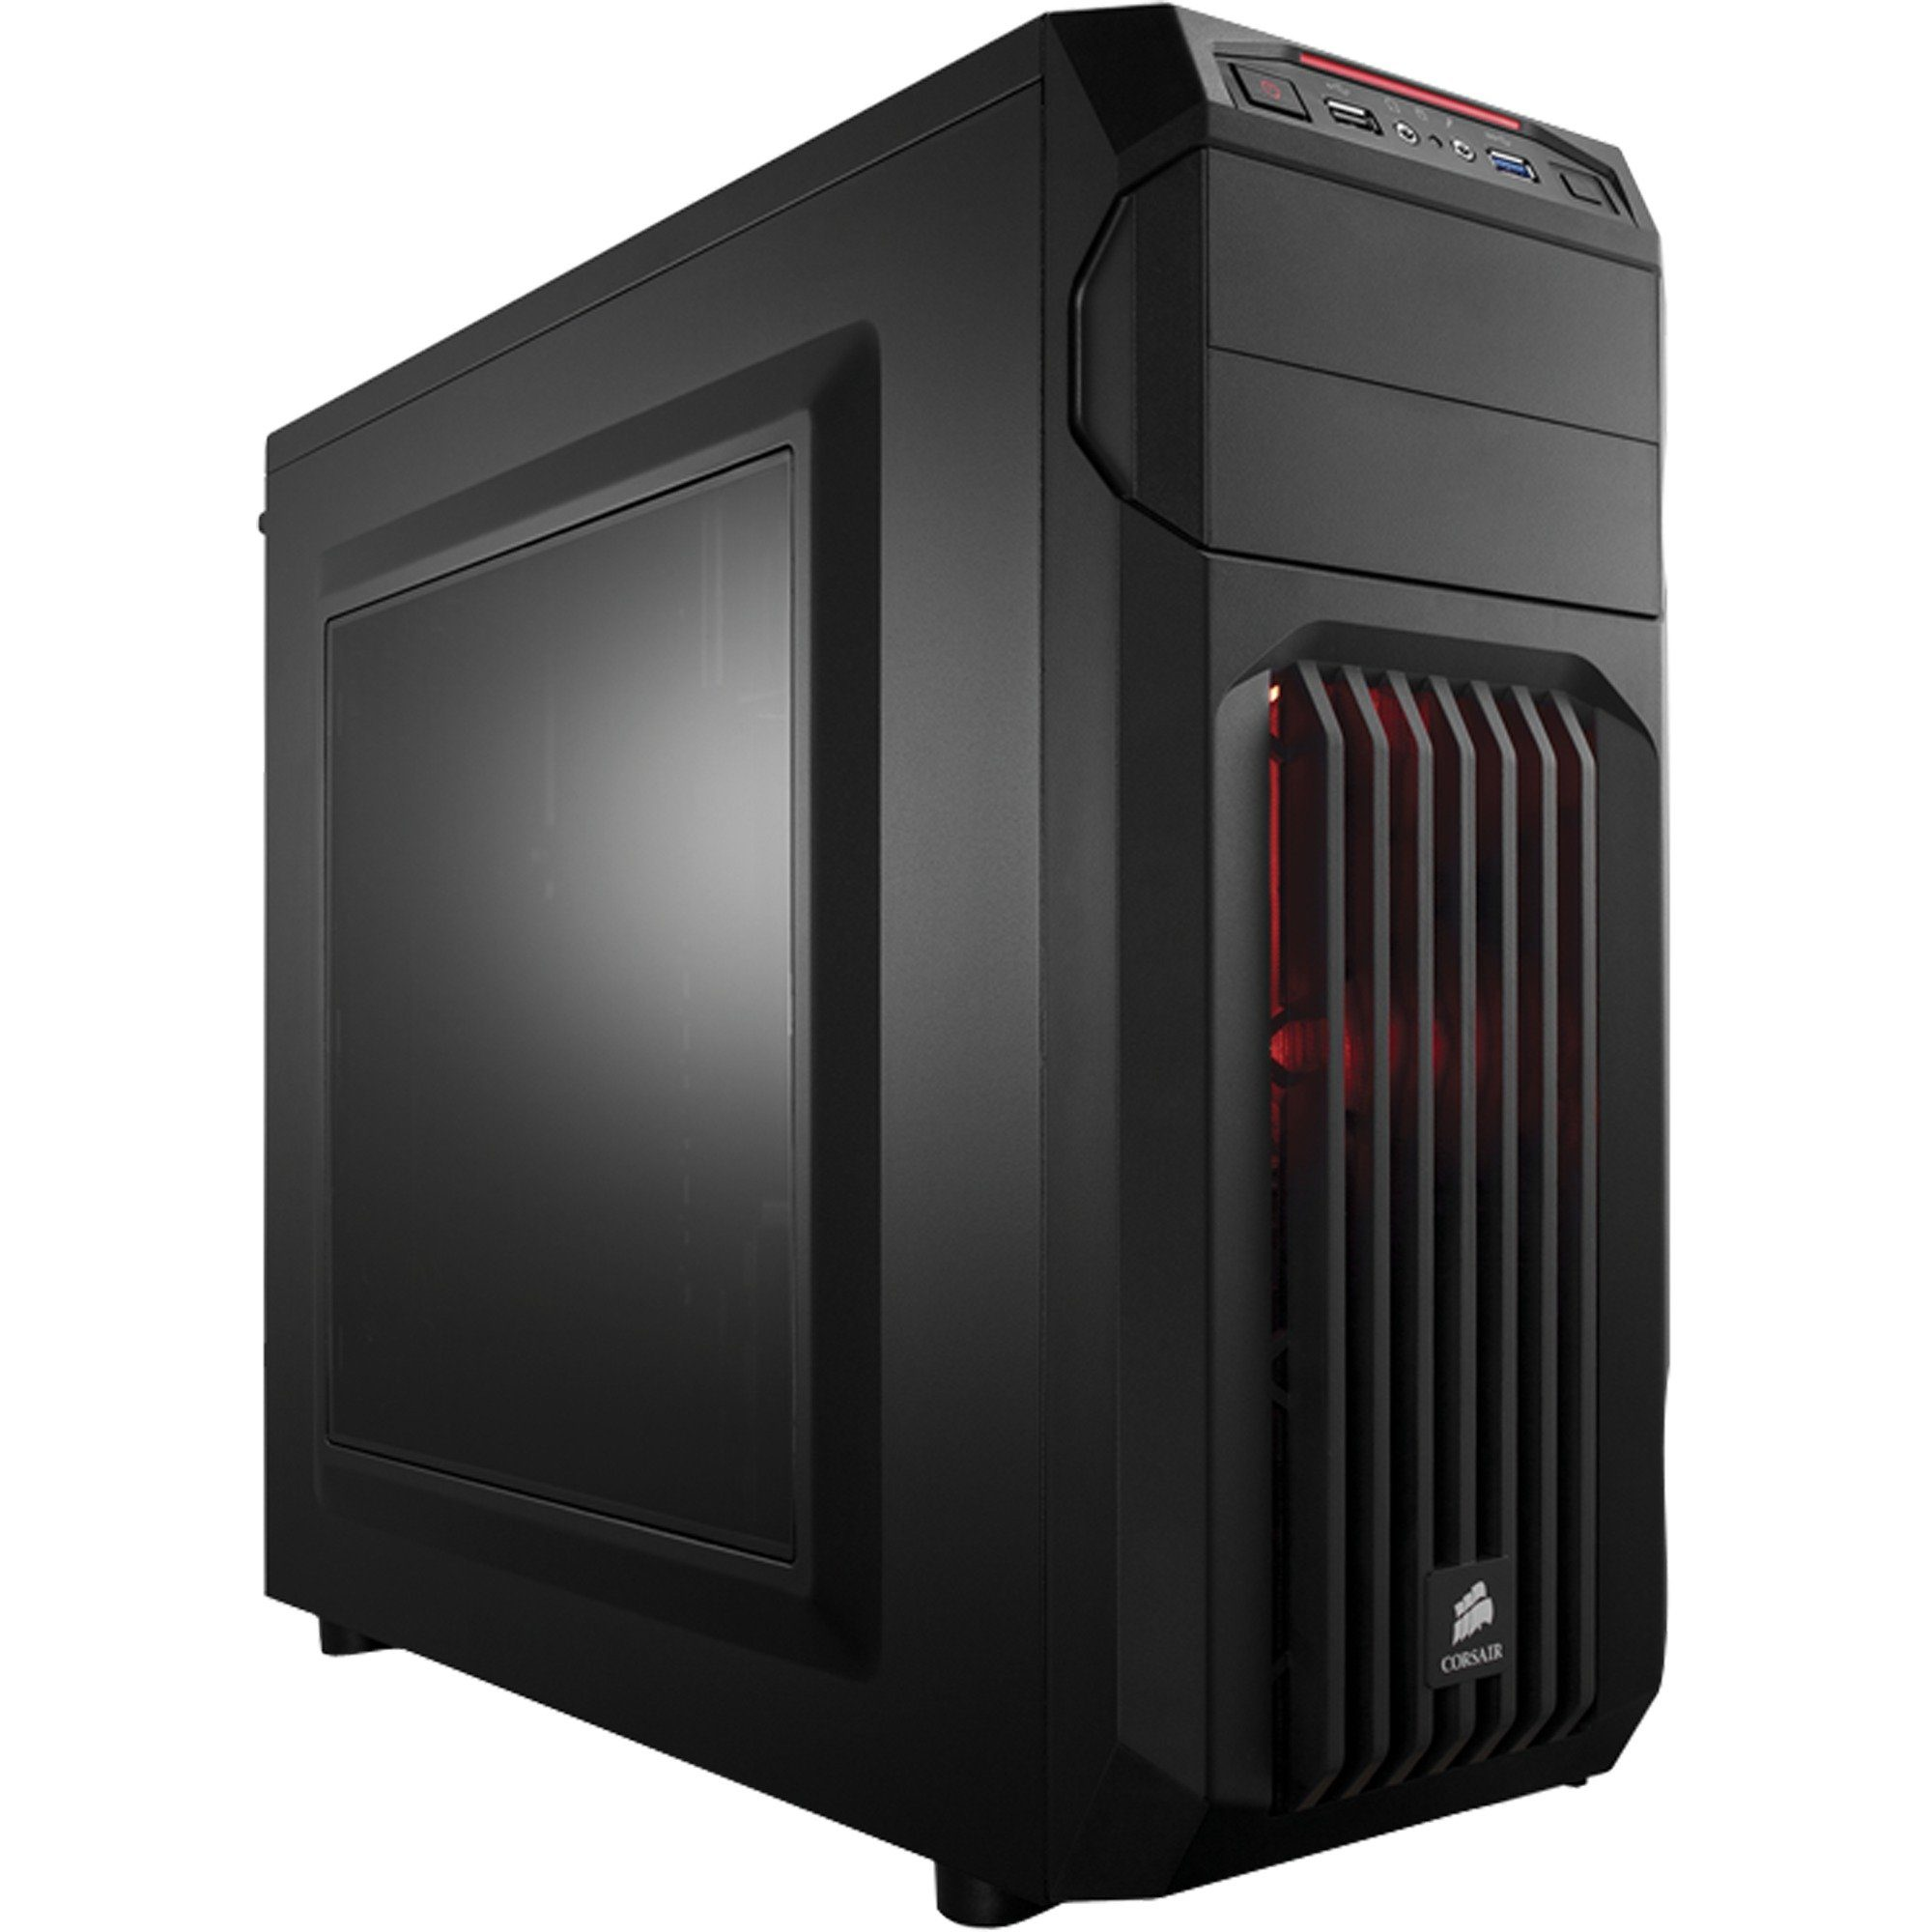 Corsair Tower-Gehäuse »SPEC-01 Red LED«